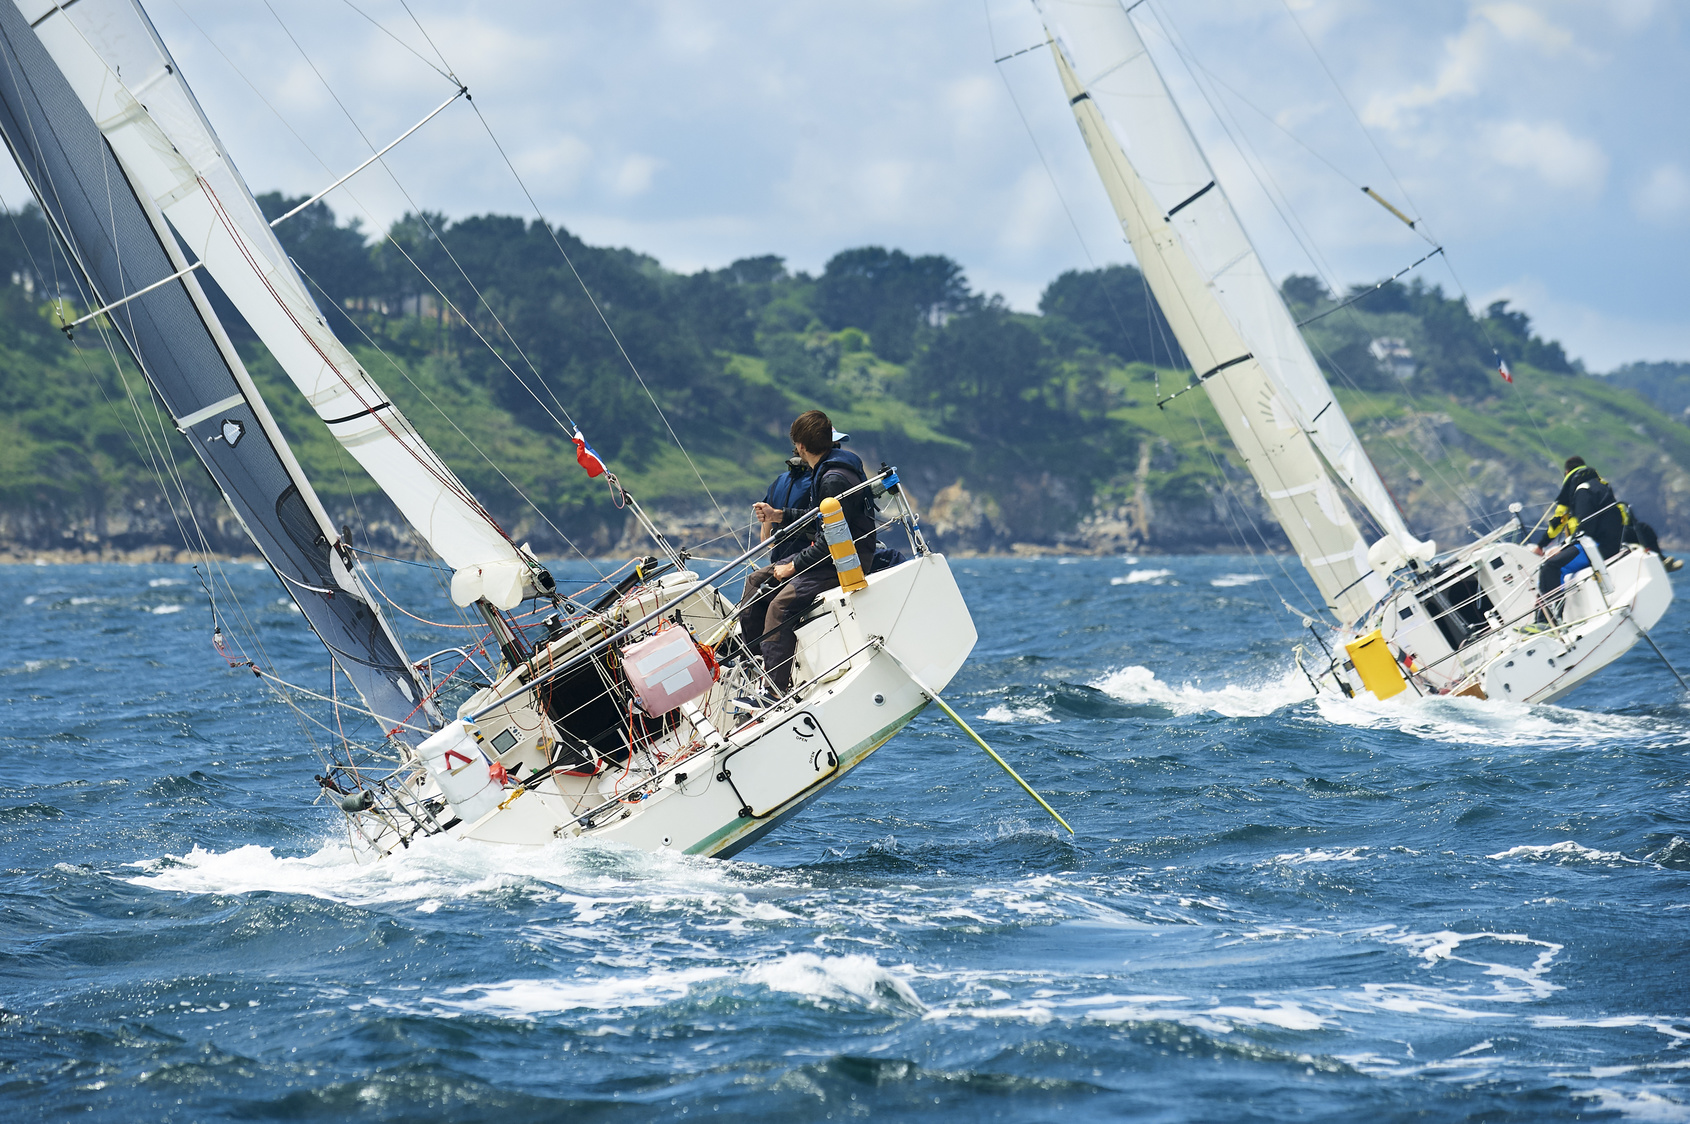 sailing-race-regattas-Vis-Regatta